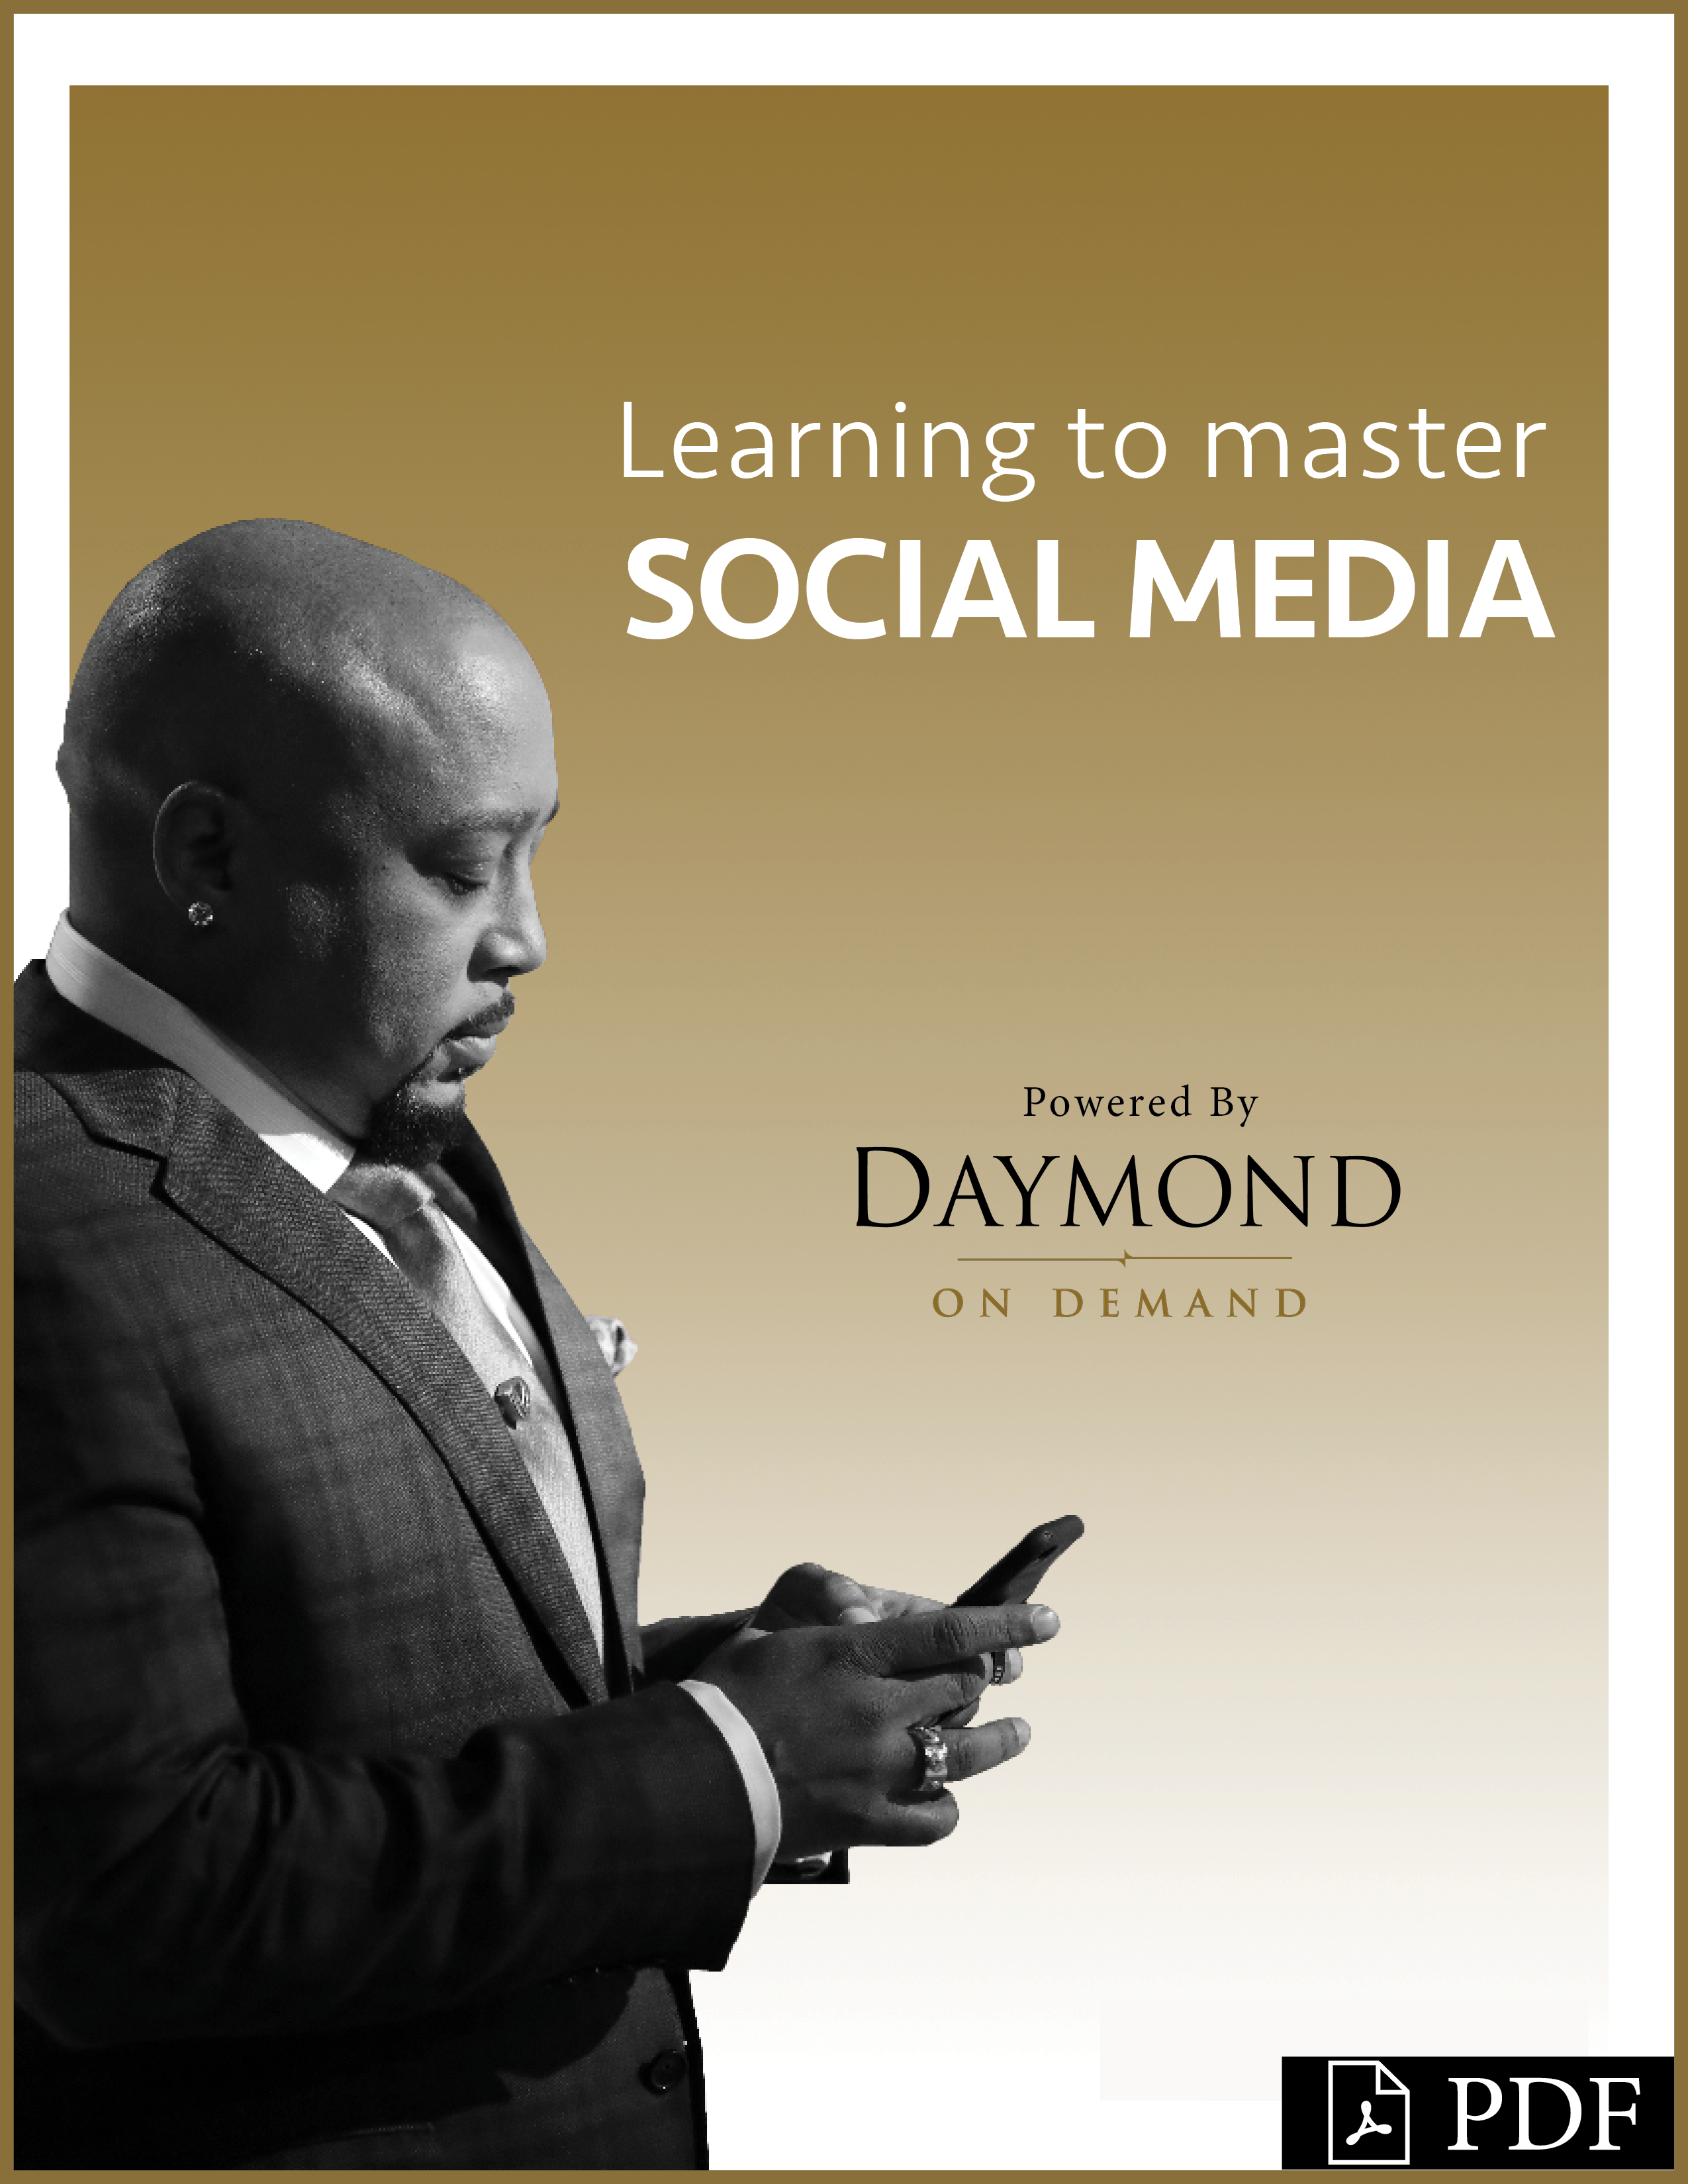 how to master social media download